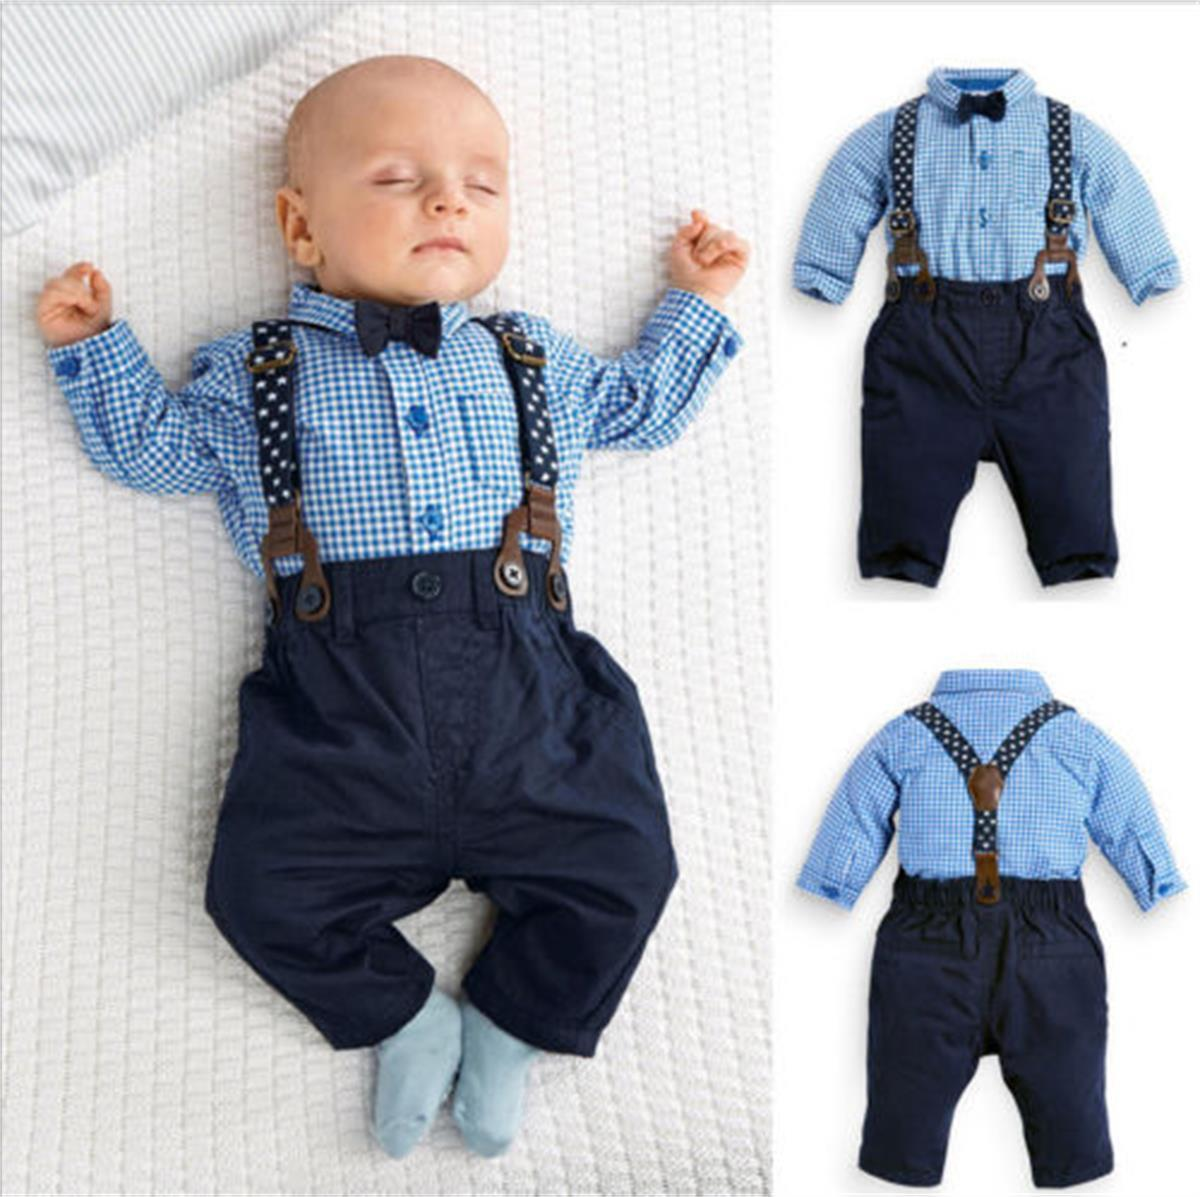 Toddler Kids Baby Boys T-Shirt Tops Braces Trousers Overall Outfits Clothes Set